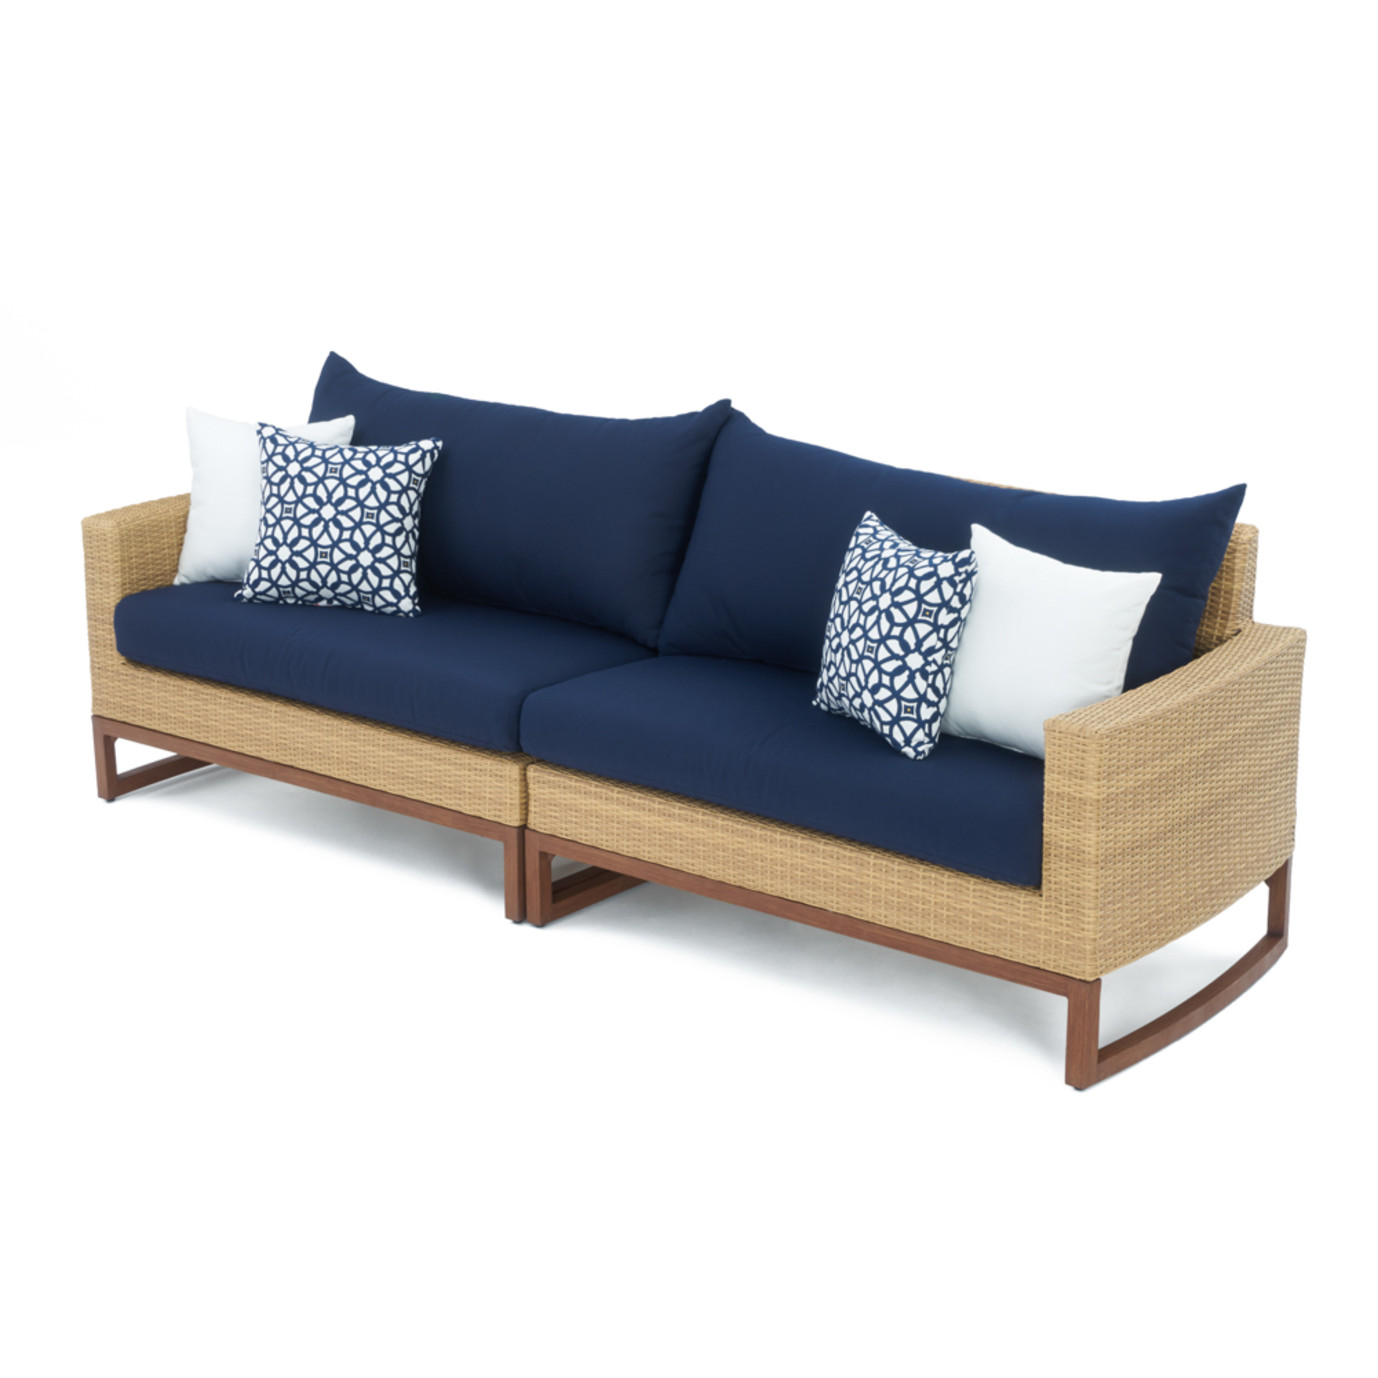 mileatm 6pc sofa sectional navy blue rst brands With 6pc sectional sofa